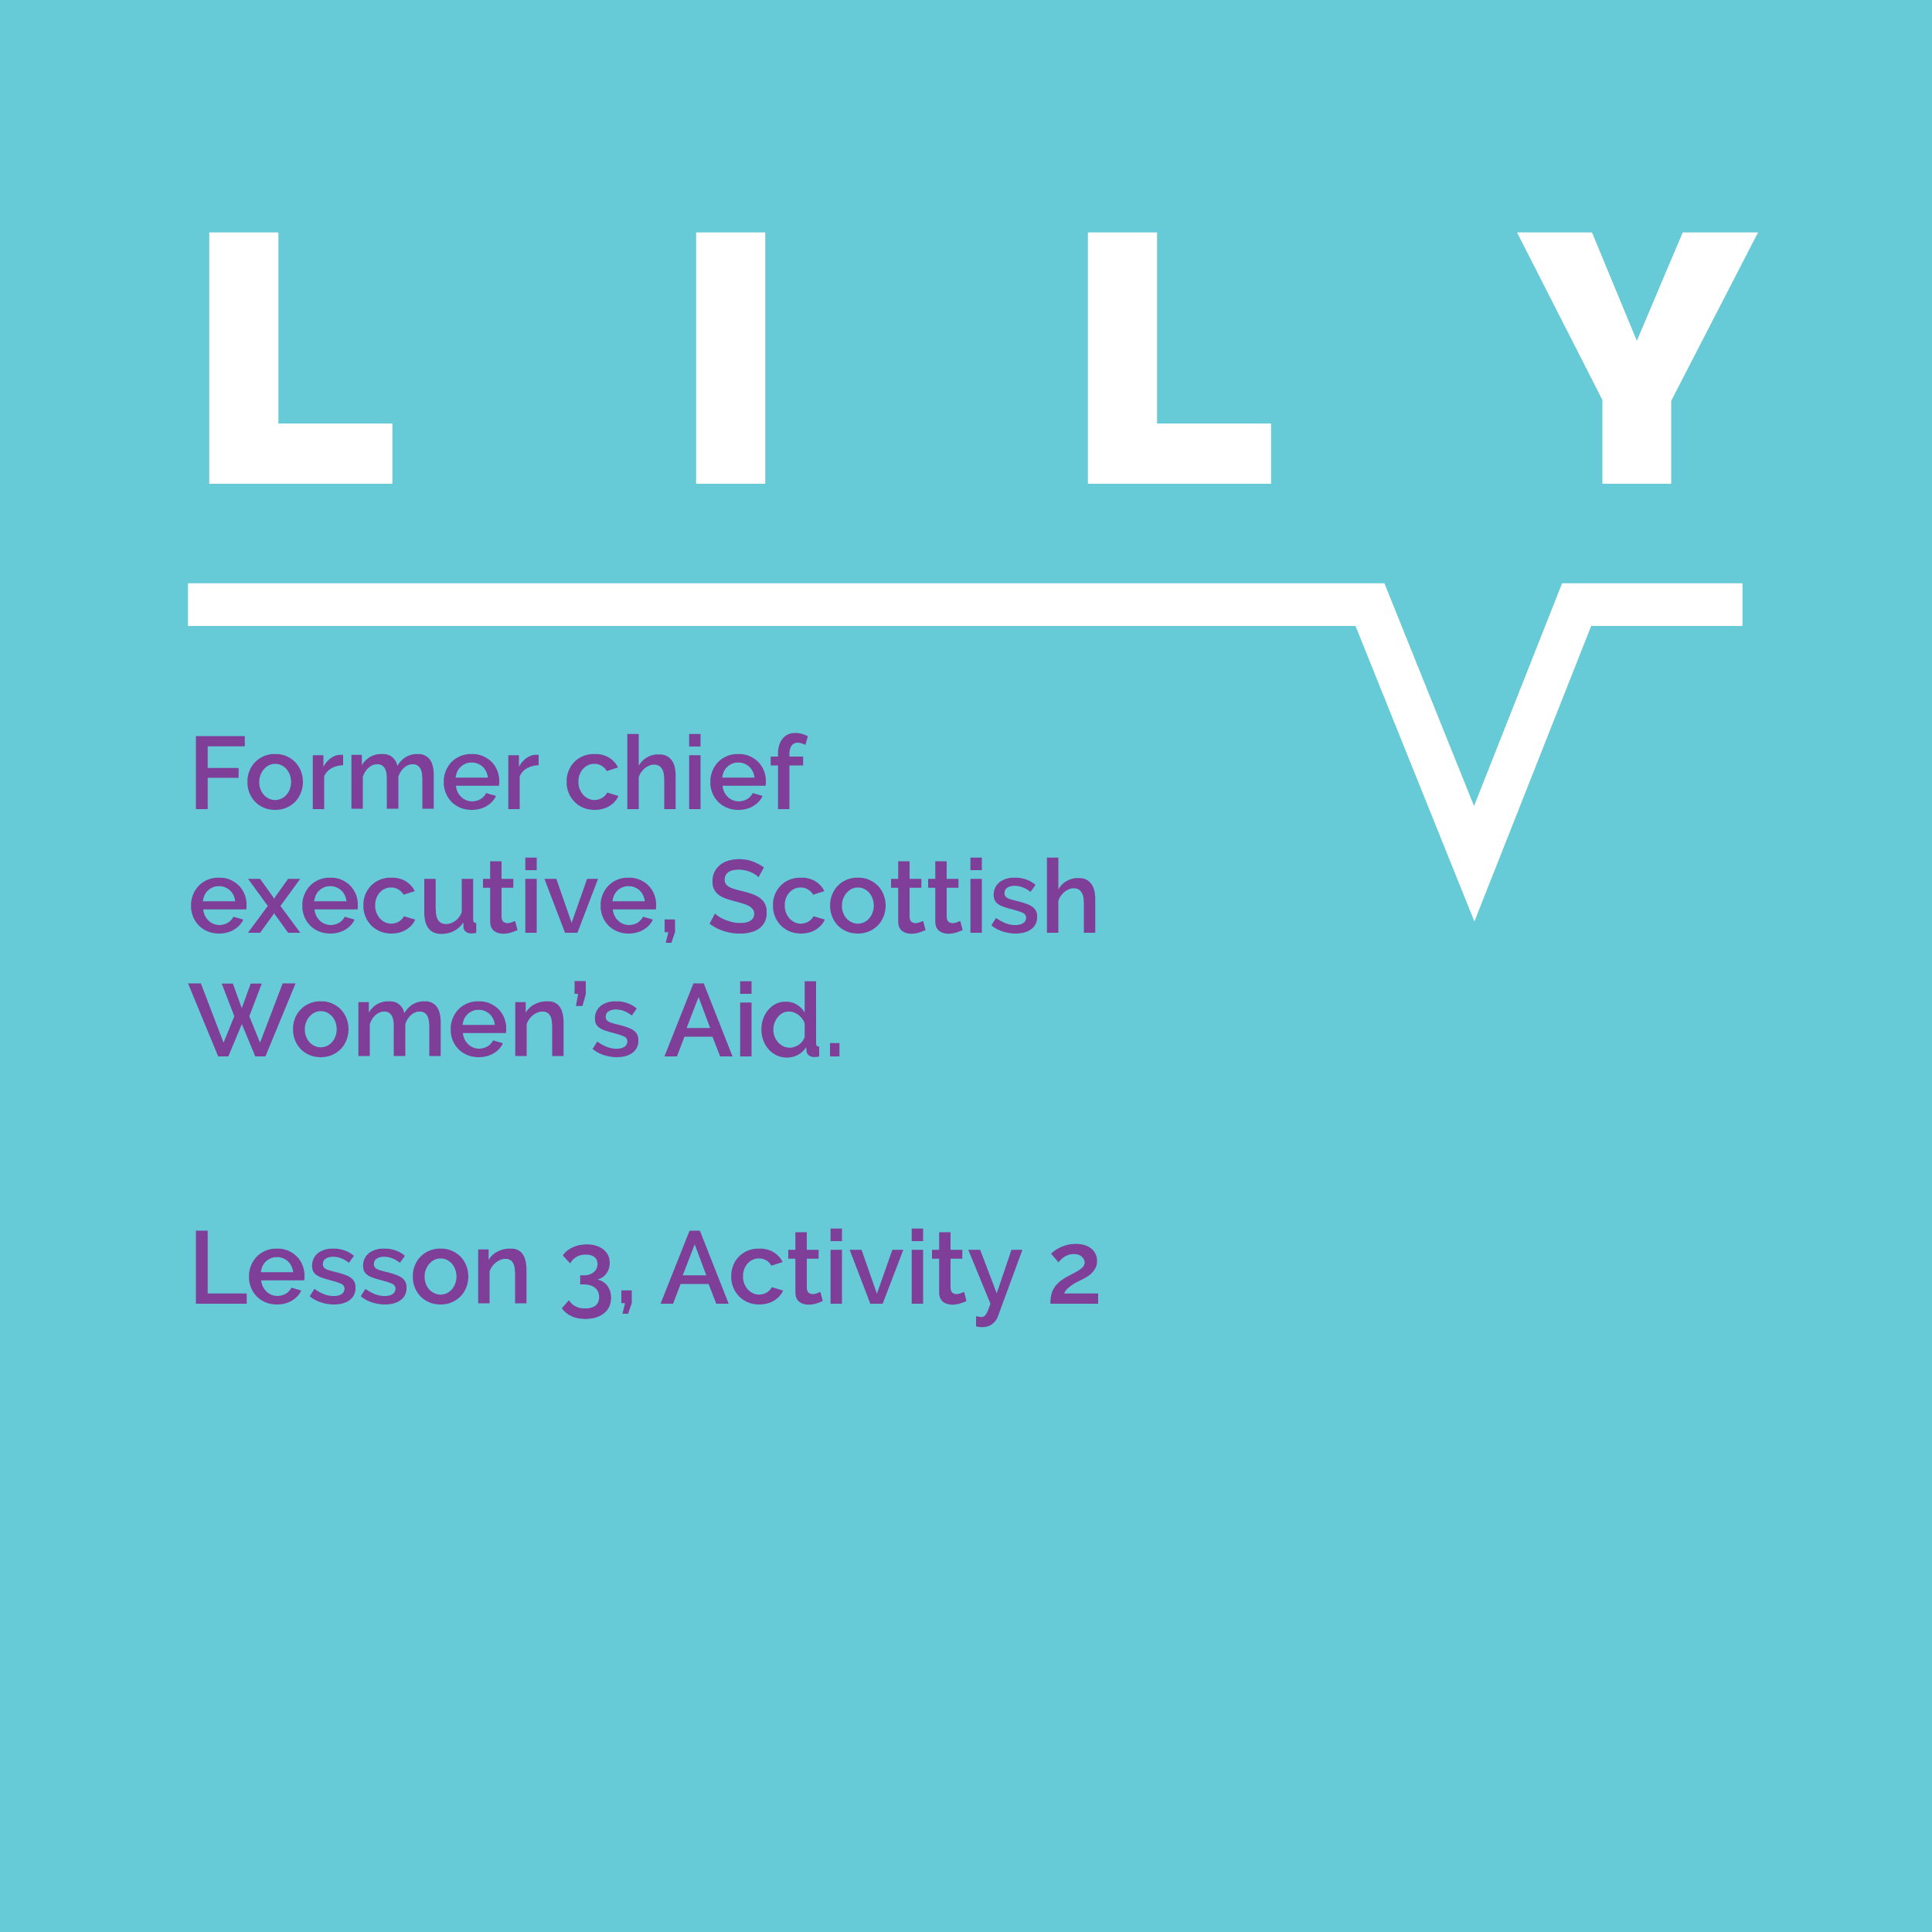 Speaking Out Learning Resource, Lesson 3, Activity 2: Lily, Former chief executive, Scottish Women's Aid